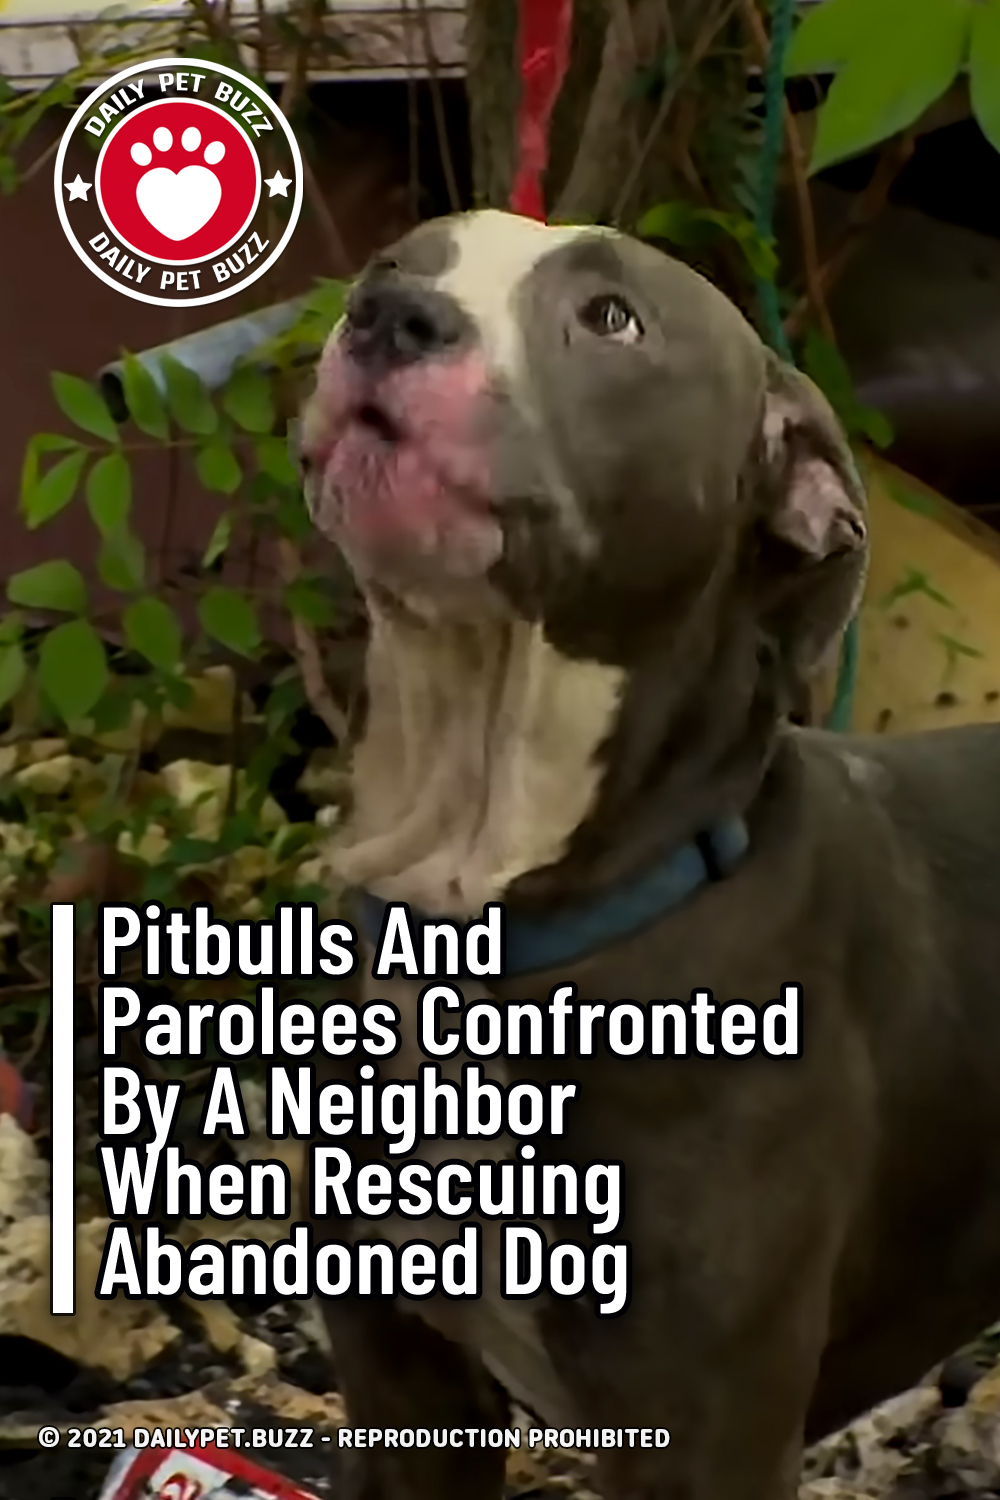 Pitbulls And Parolees Confronted By A Neighbor When Rescuing Abandoned Dog